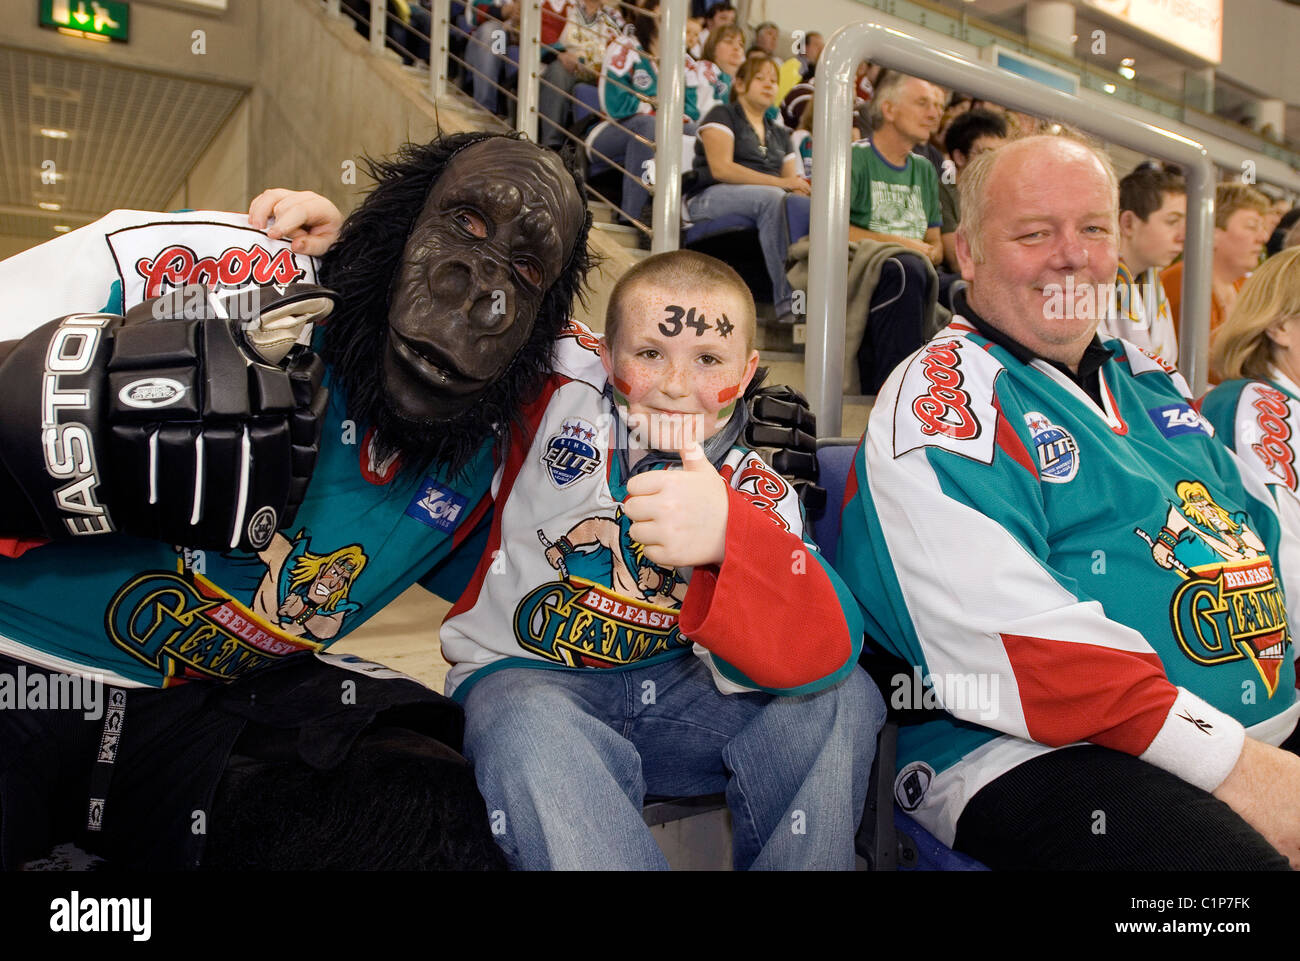 United Kingdom, Northern Ireland (Ulster), Belfast, The Arena in the Odyssey Pavilion, hockey arenas the Belfast - Stock Image